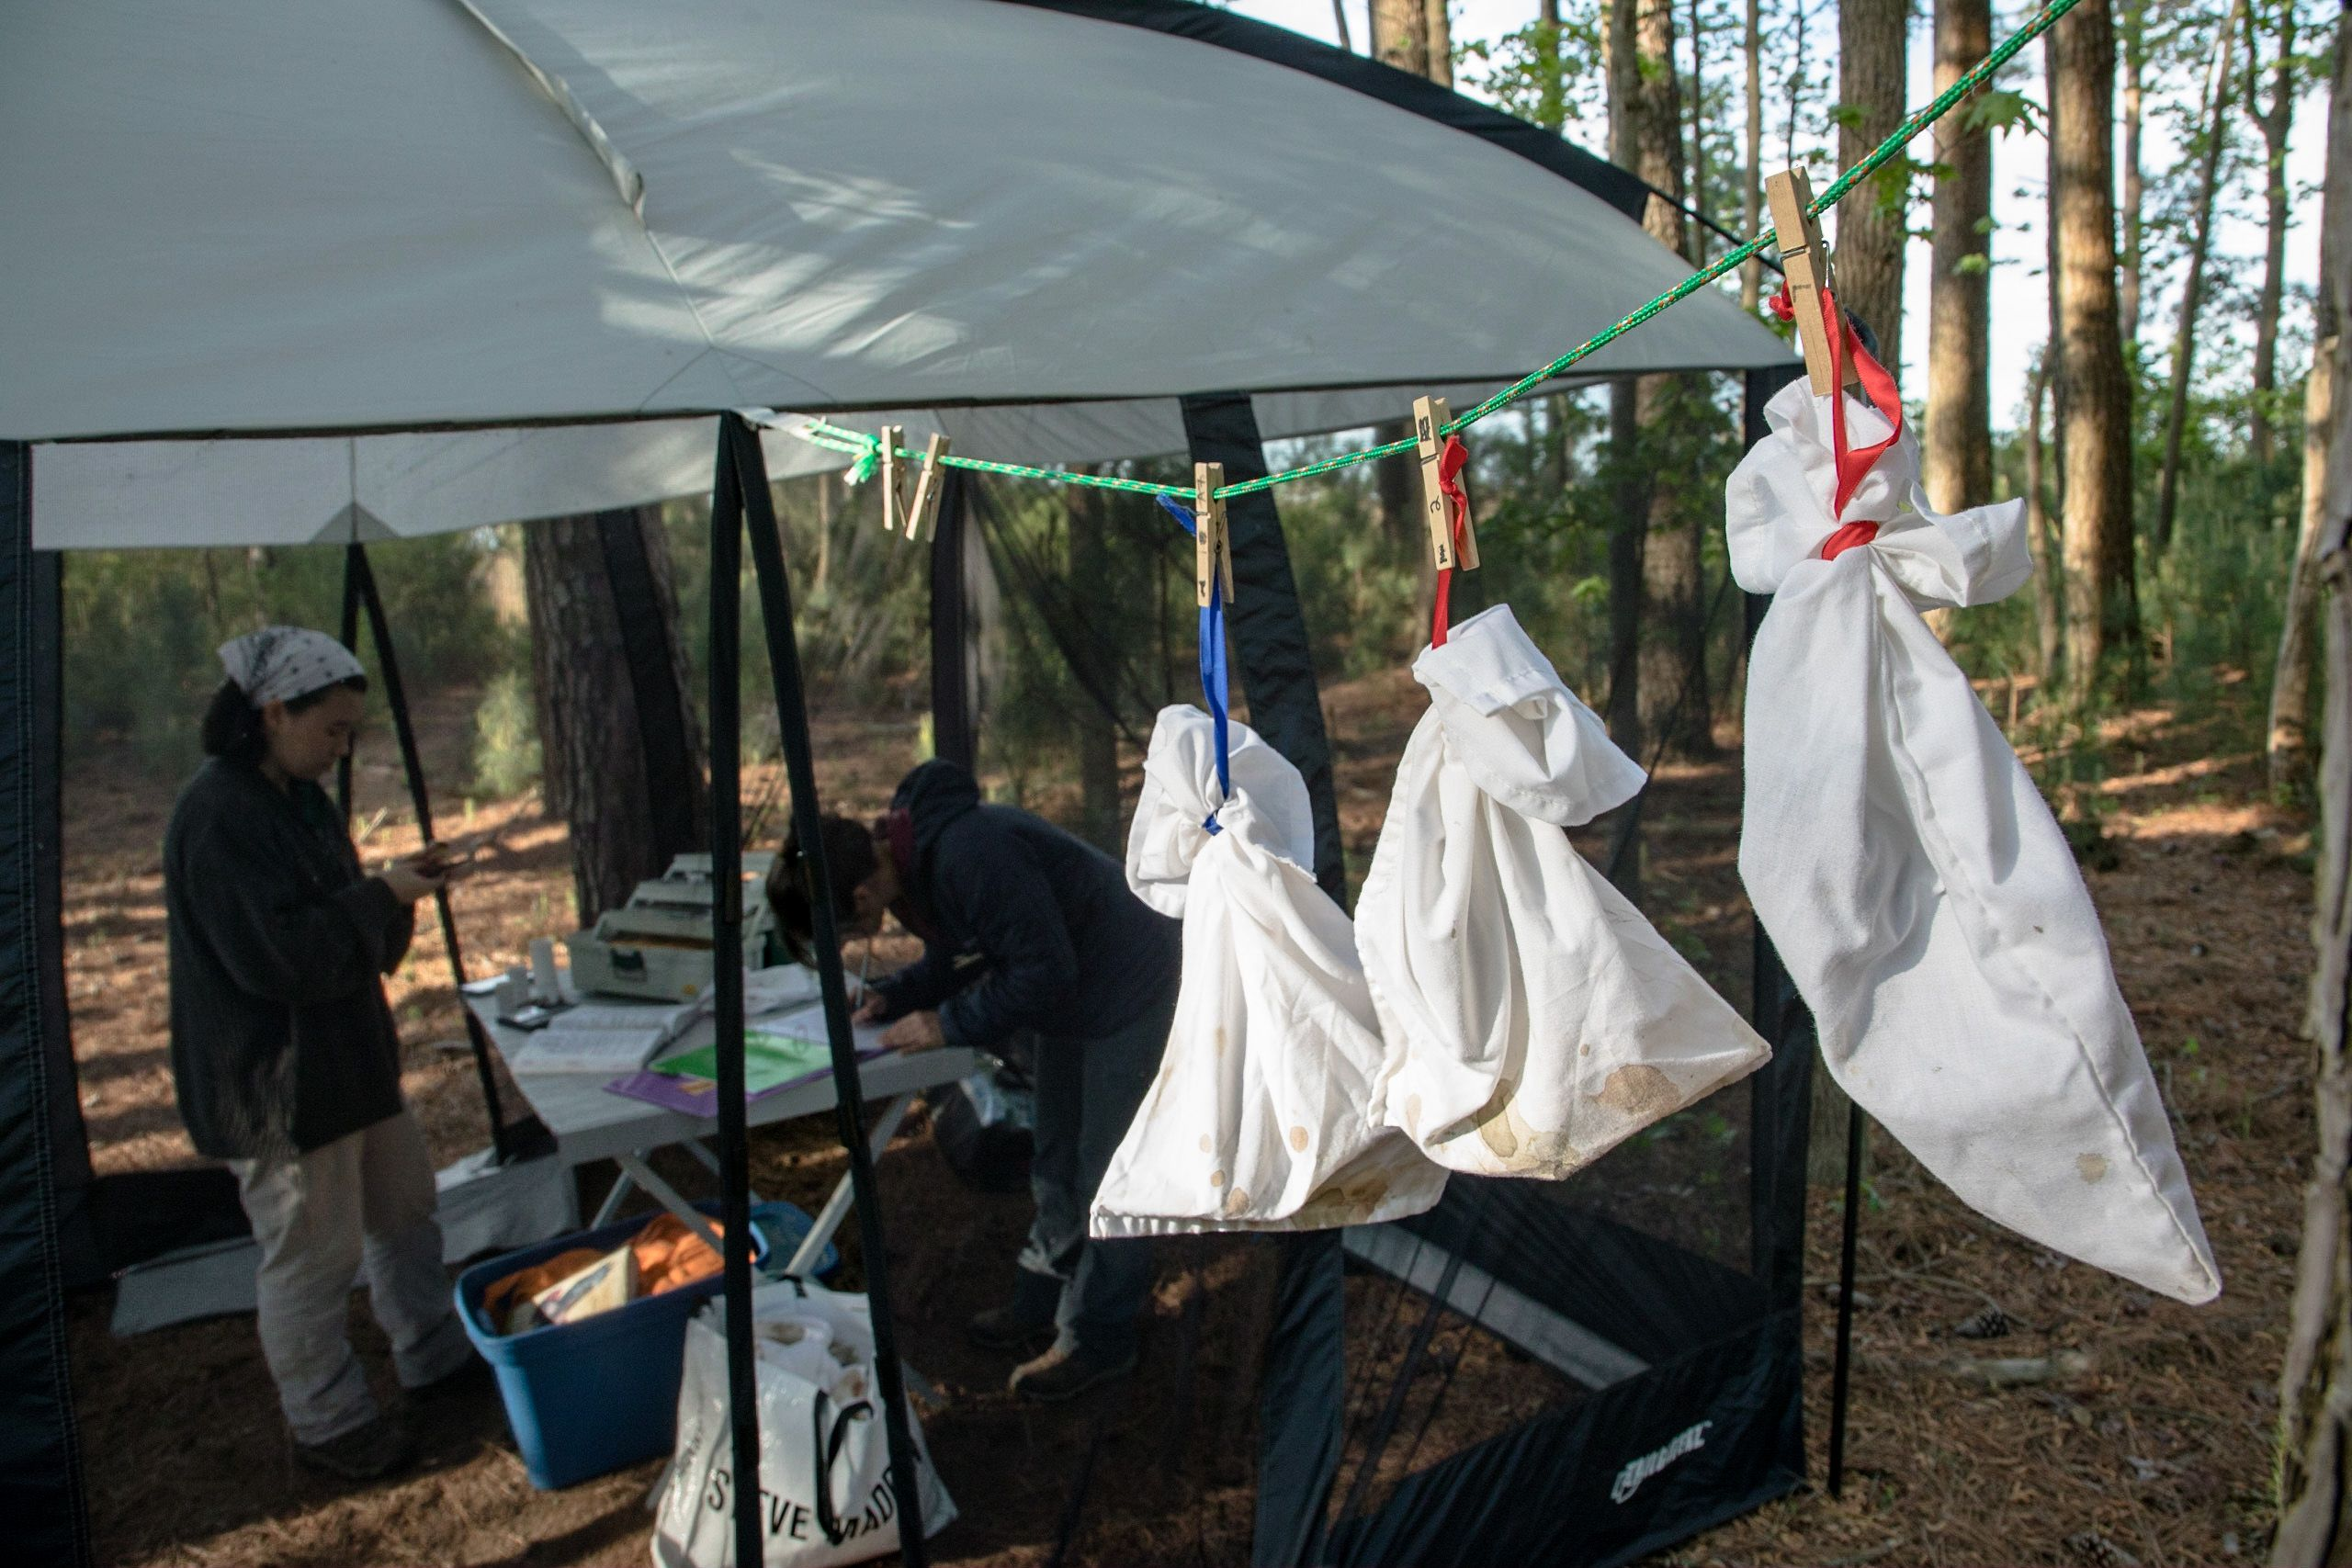 Three white cloth sacks hang pinned from a line. In the background under an open sided tent two women record observations for a bird banding study.